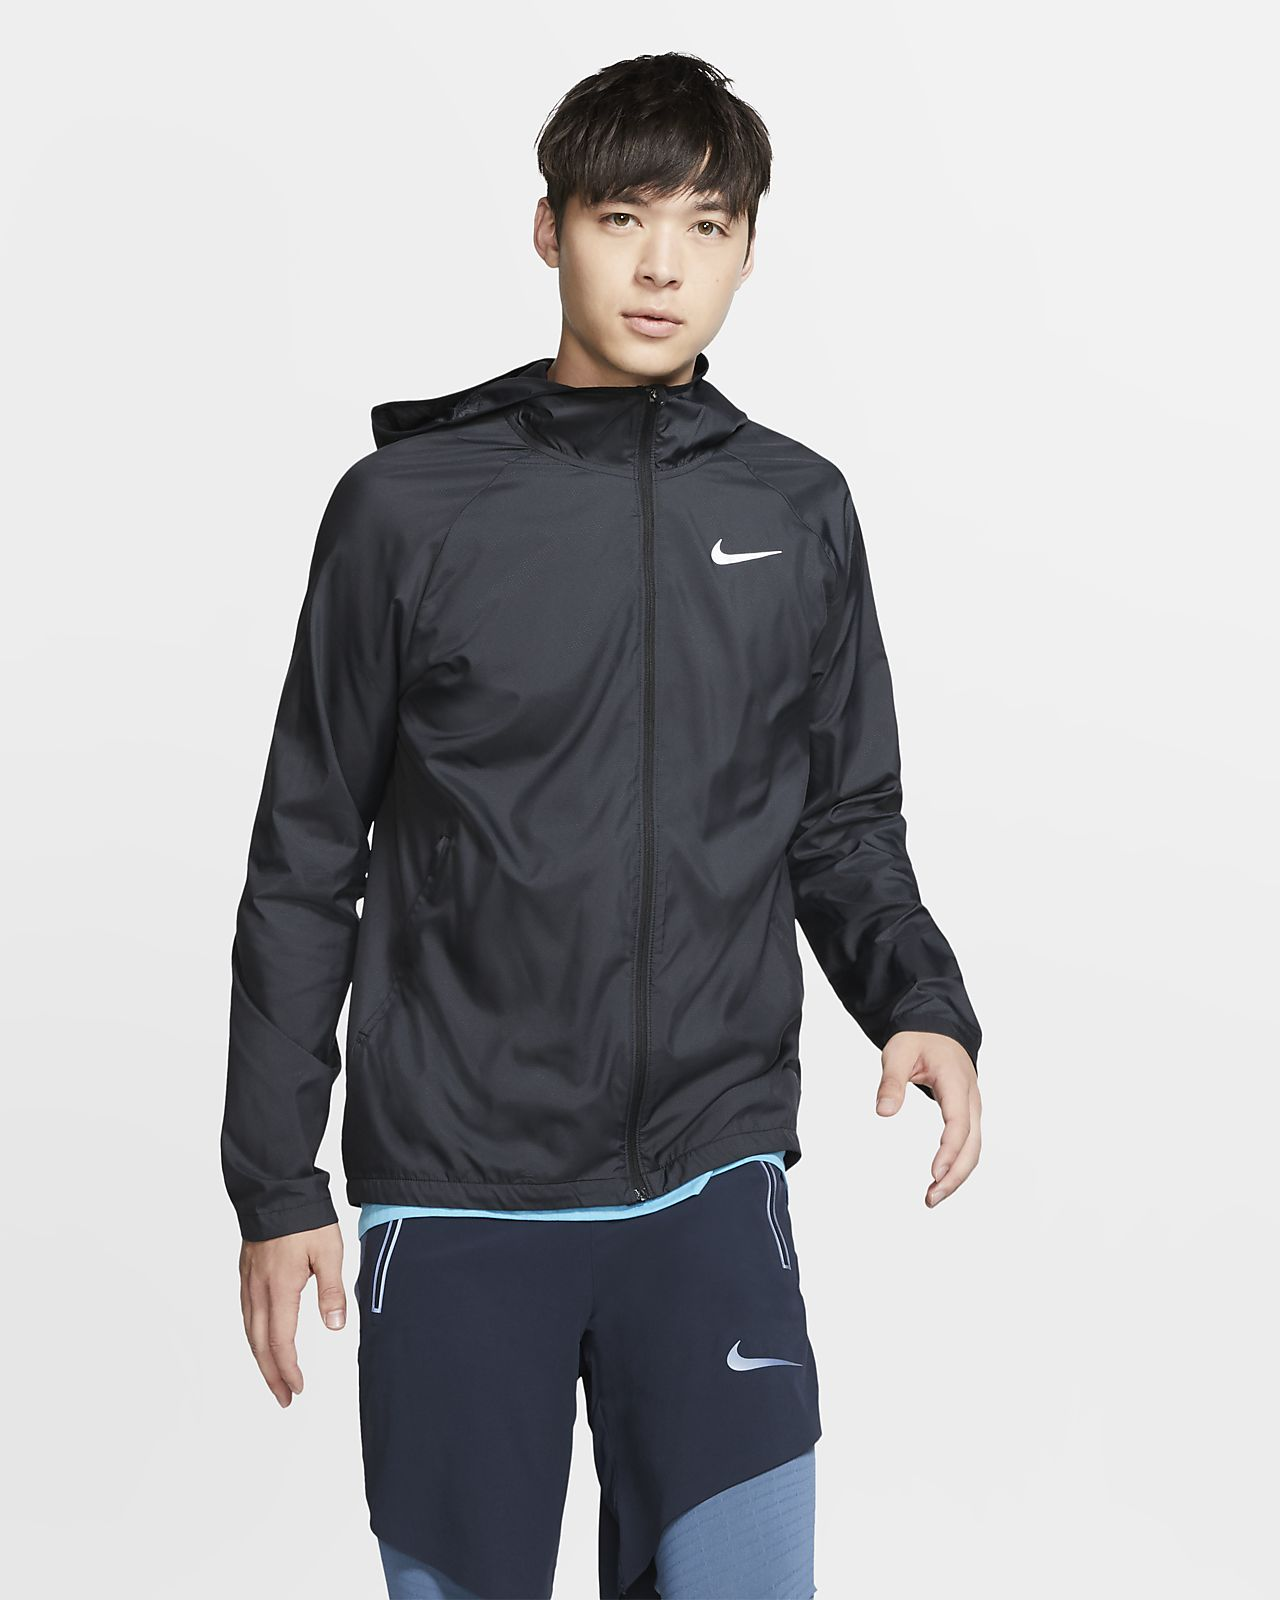 Details about Nike Essential Flash Women's Running Jacket (Black, small)